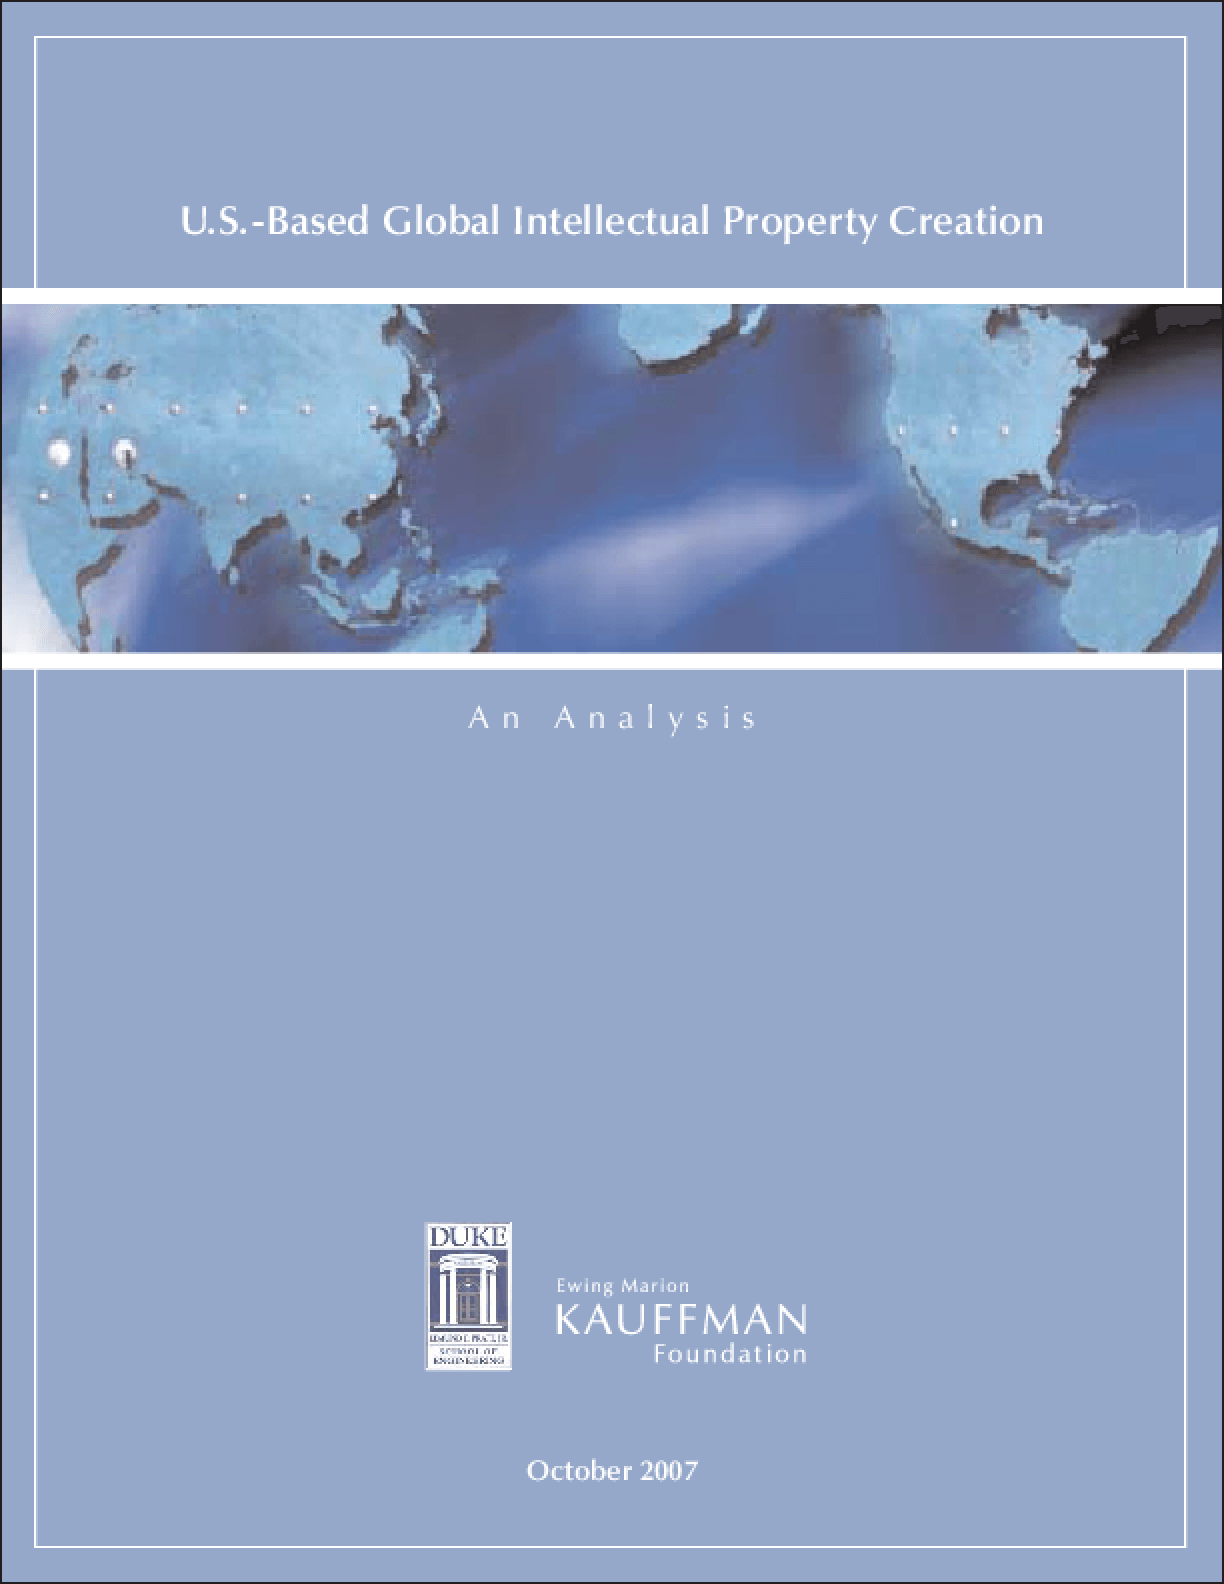 U.S.-Based Global Intellectual Property Creation: An Analysis